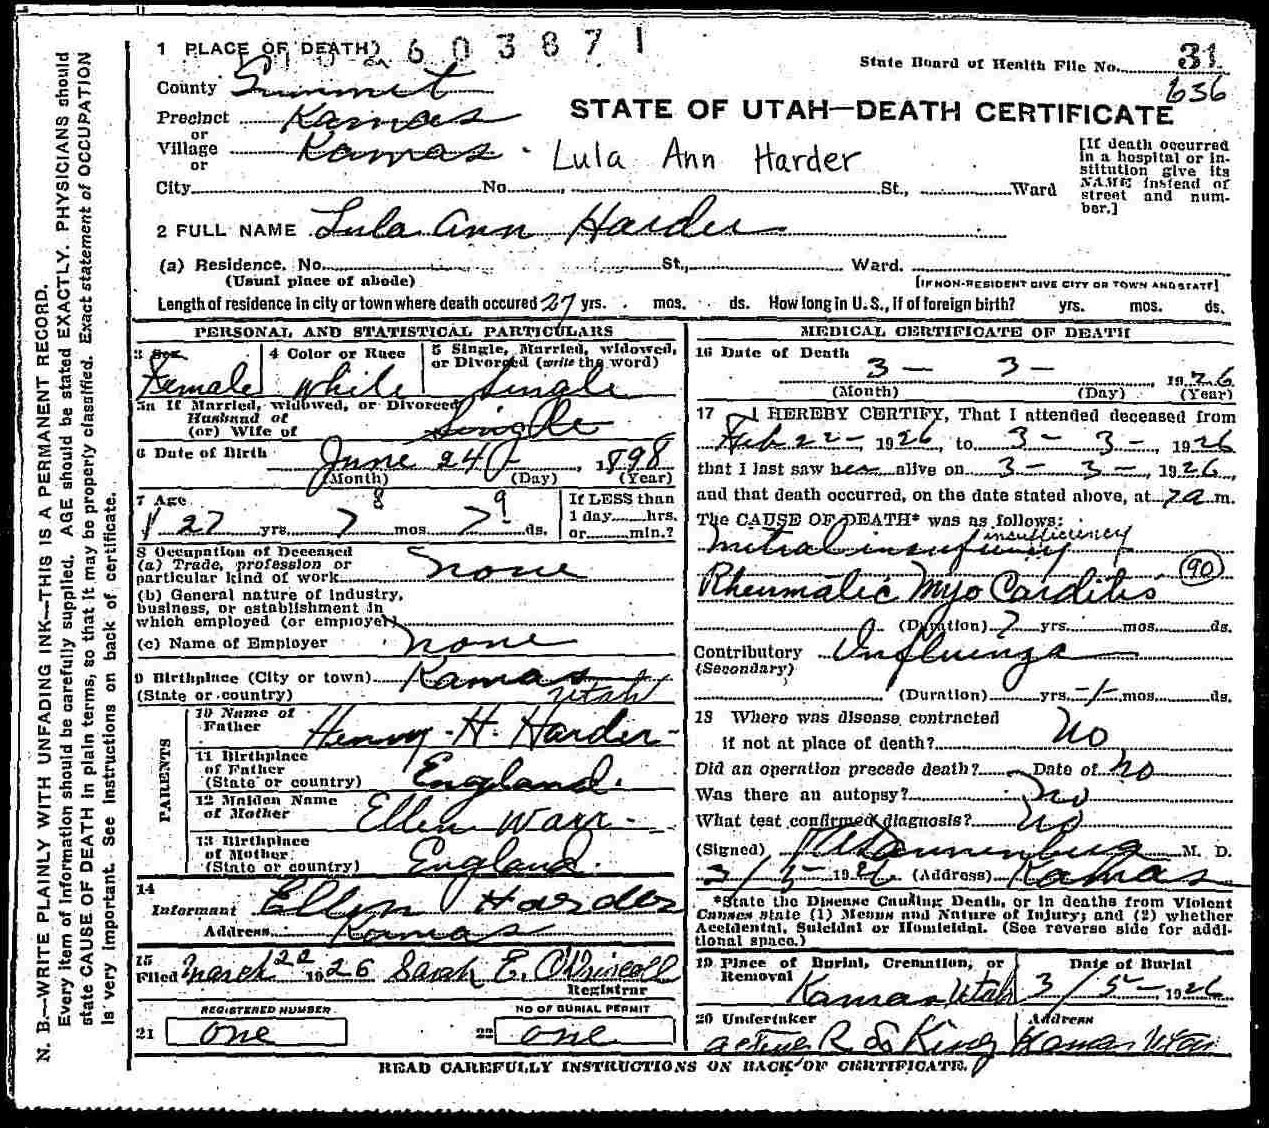 Documents: The Death Certificate of Lula Ann Harder: My Family Online